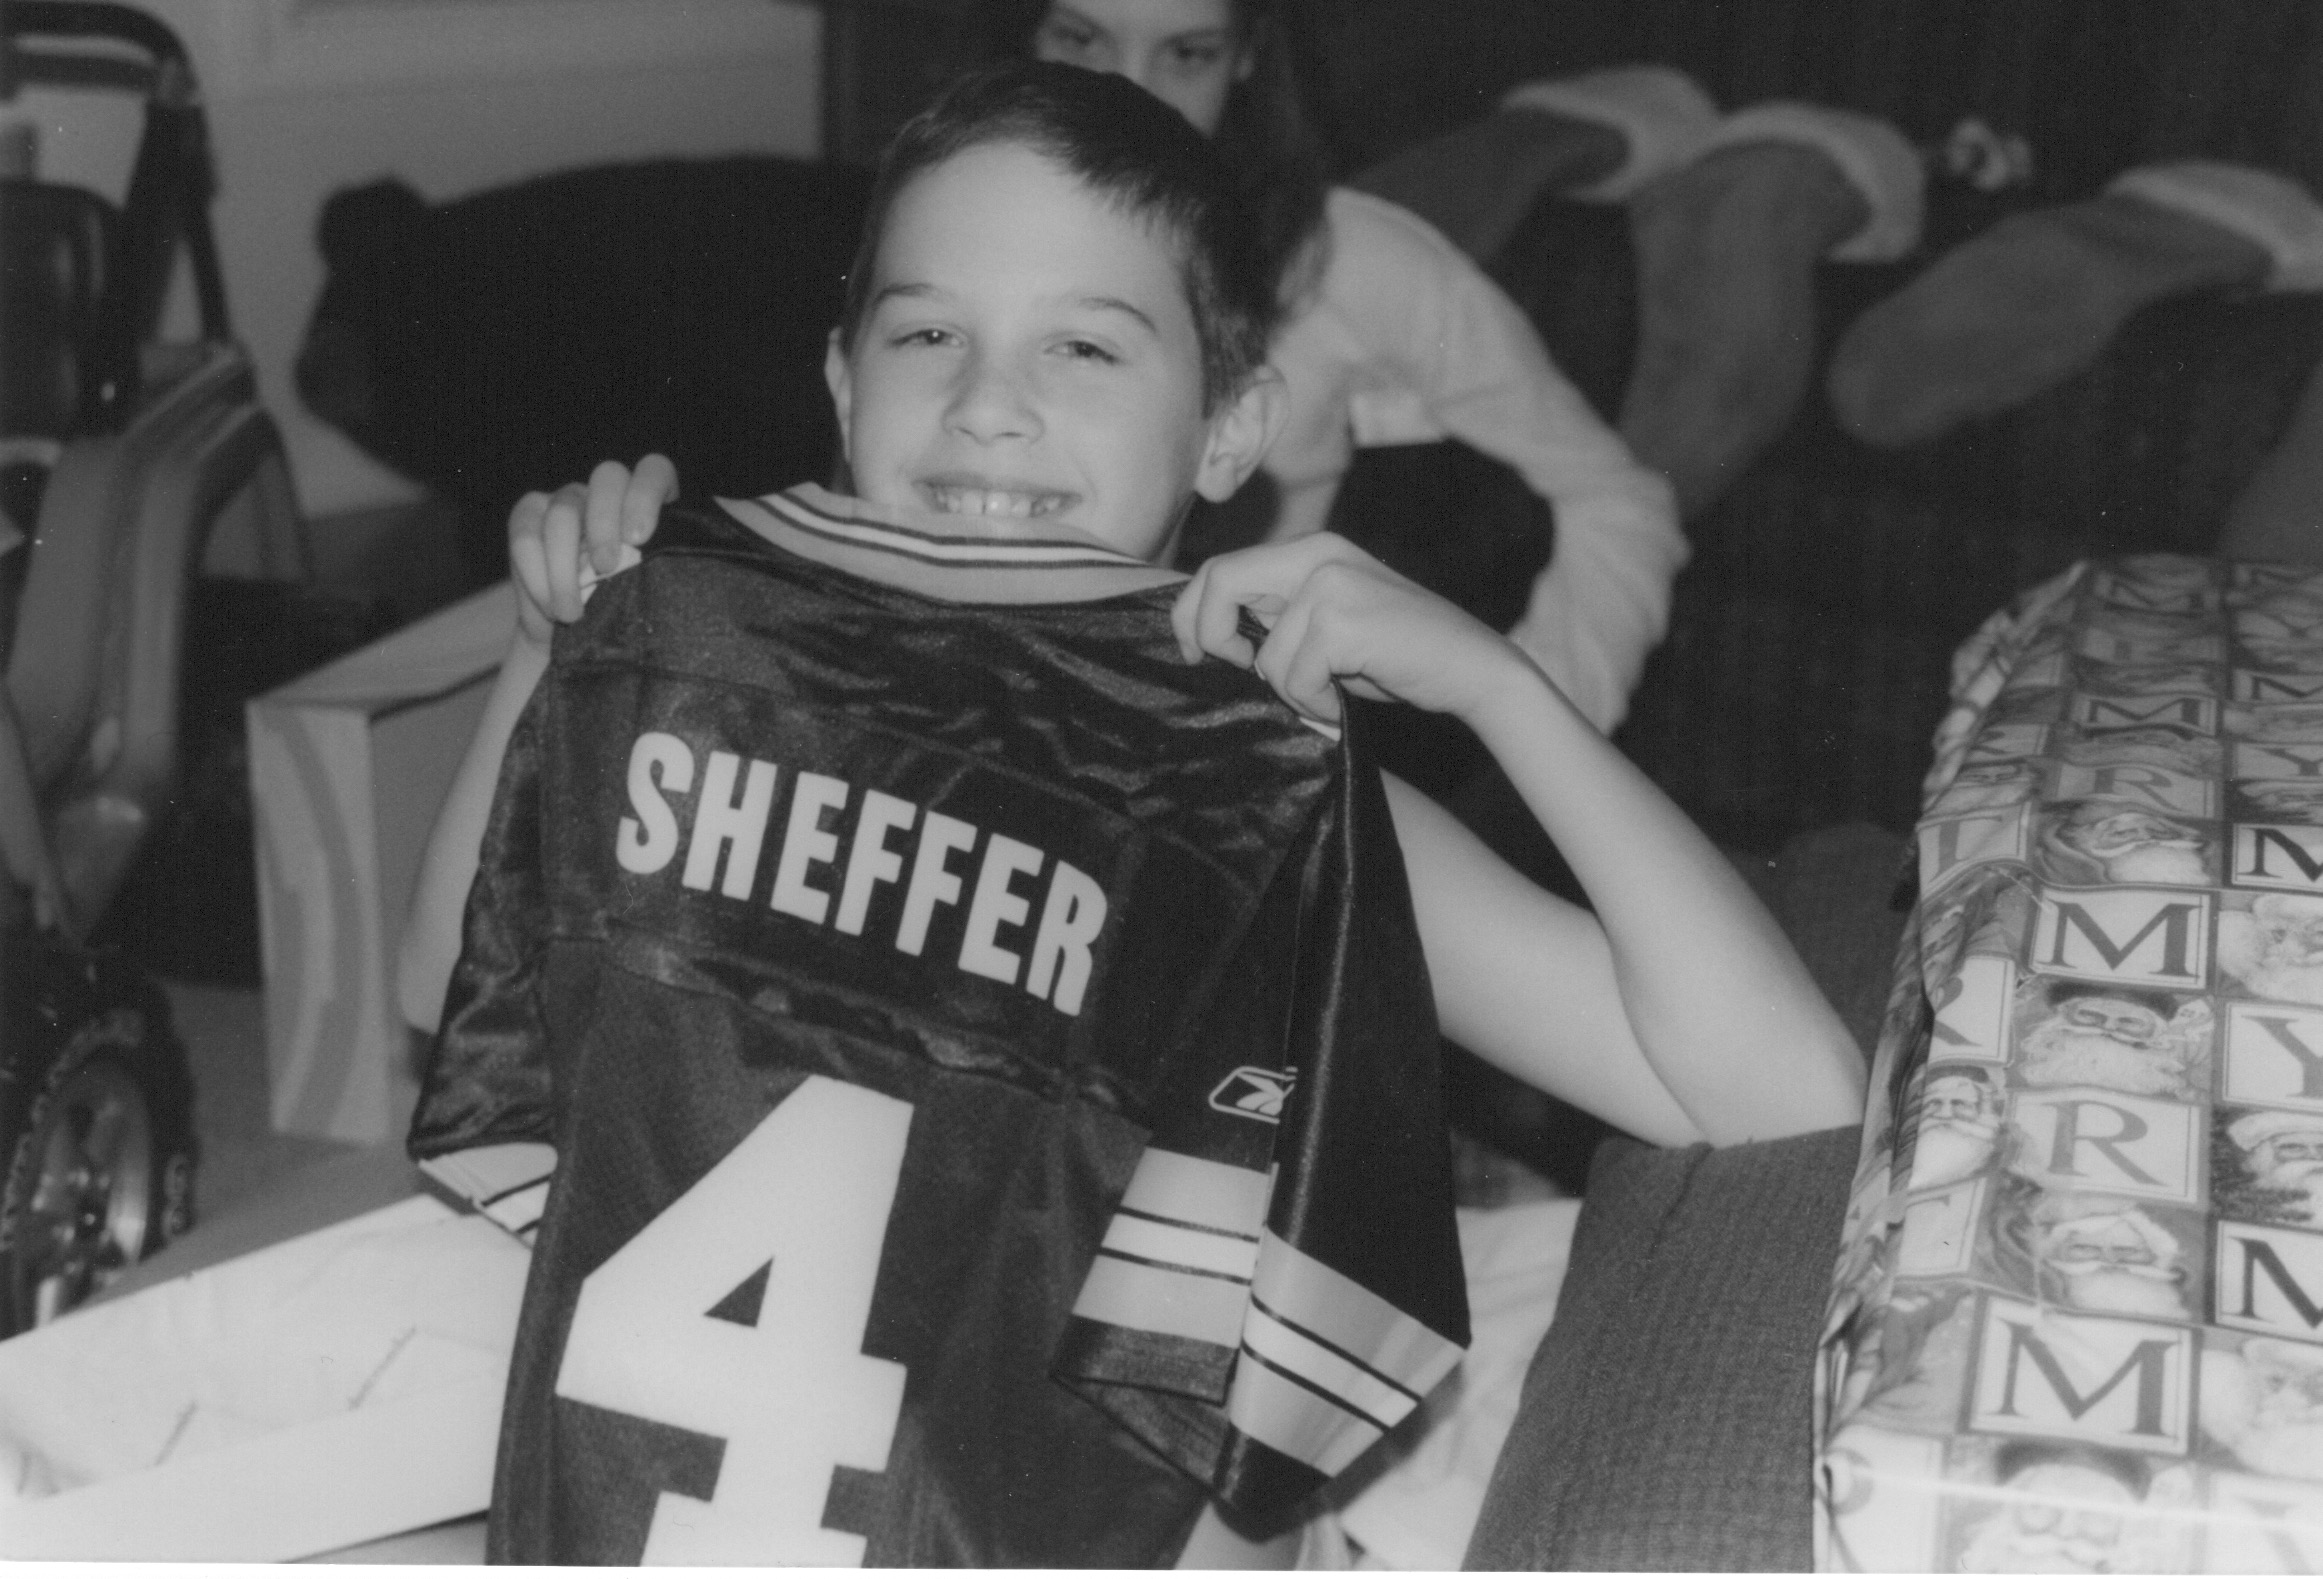 Christmas at the Sheffer house was often green, here for Peter.